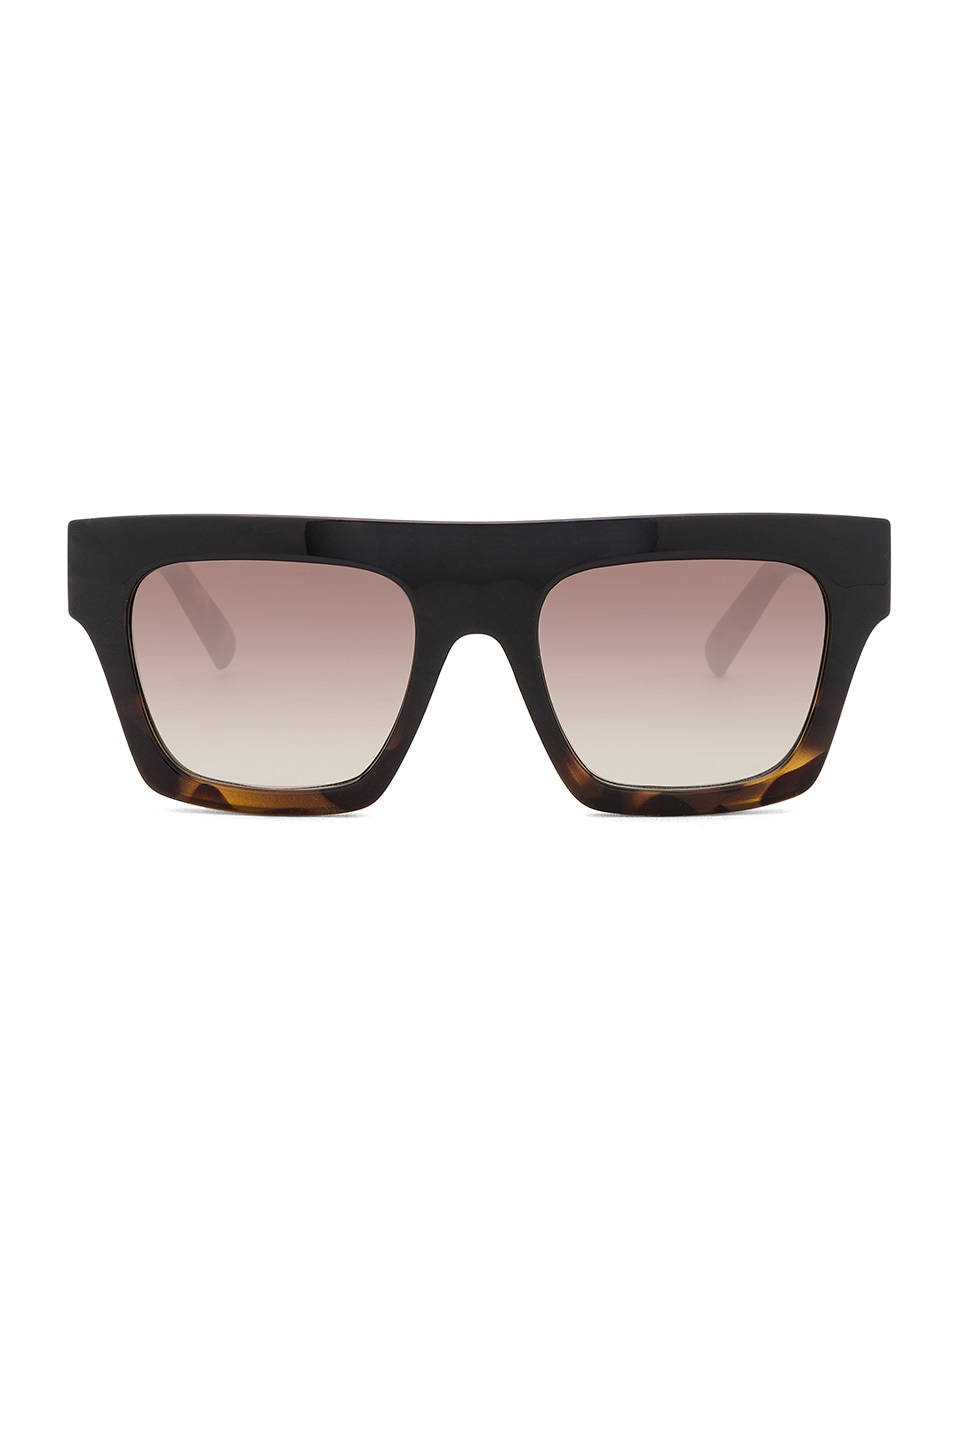 Le Specs Subdimension in Black Tort & Khaki Gradient